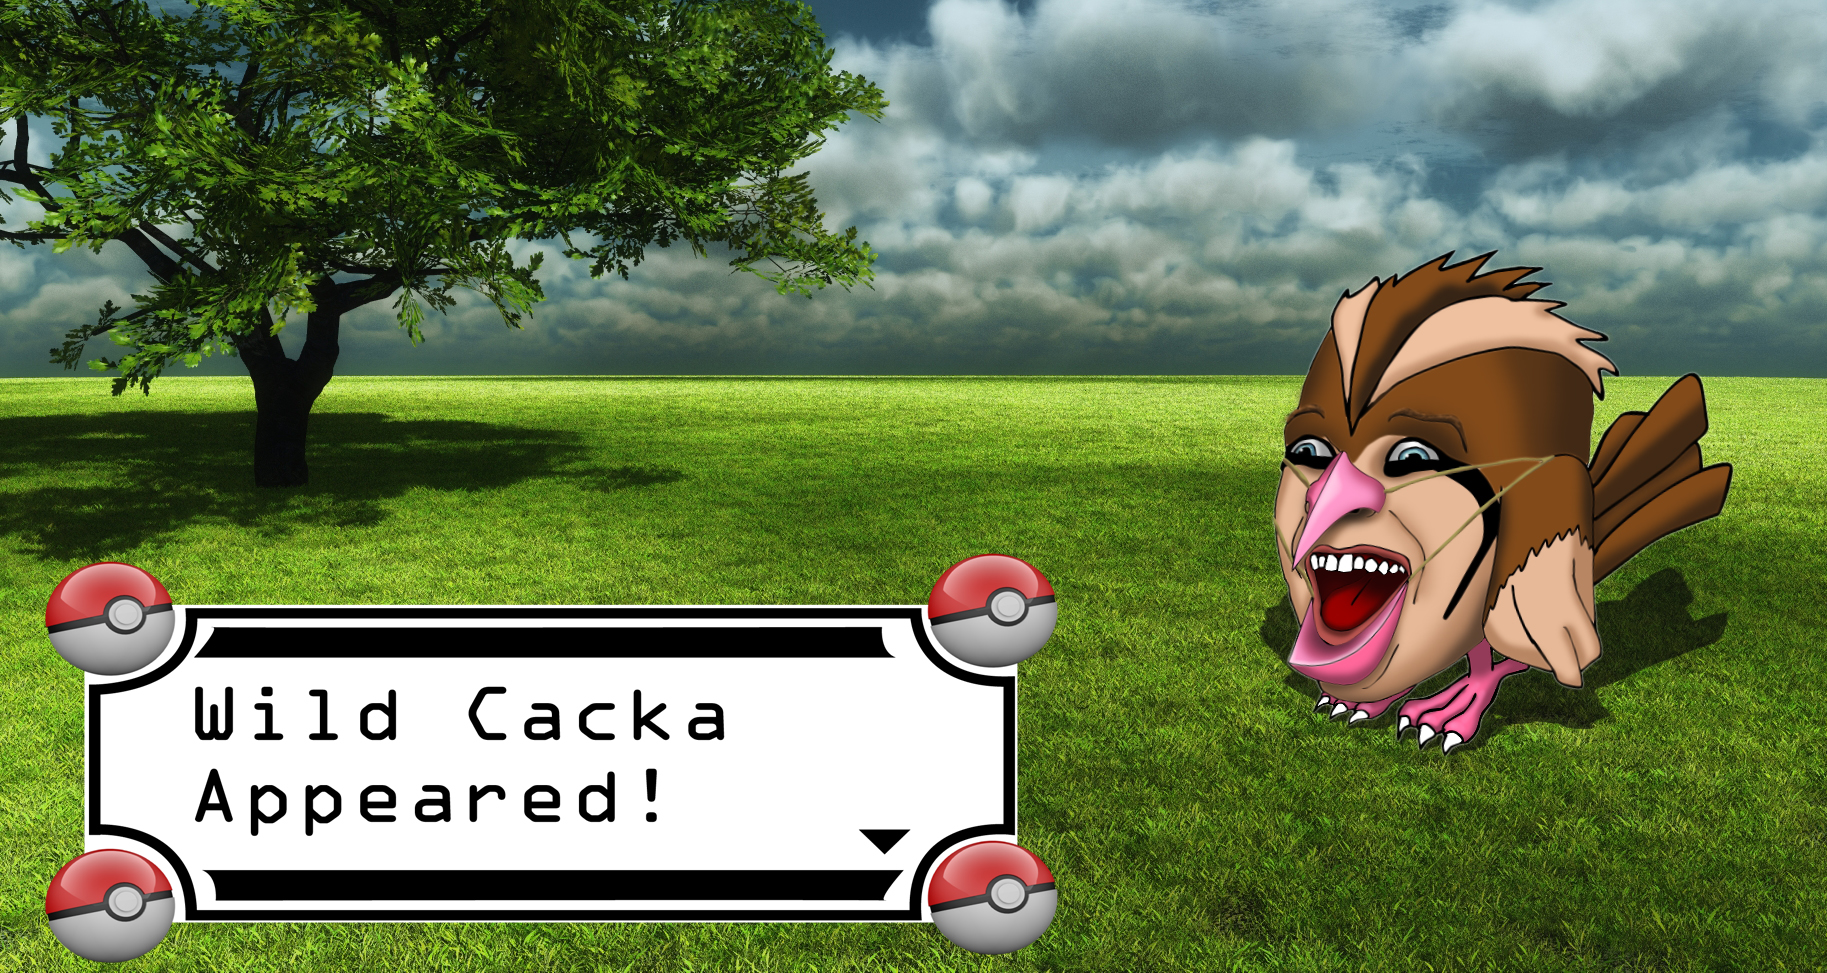 A Wild Cacka Appeared